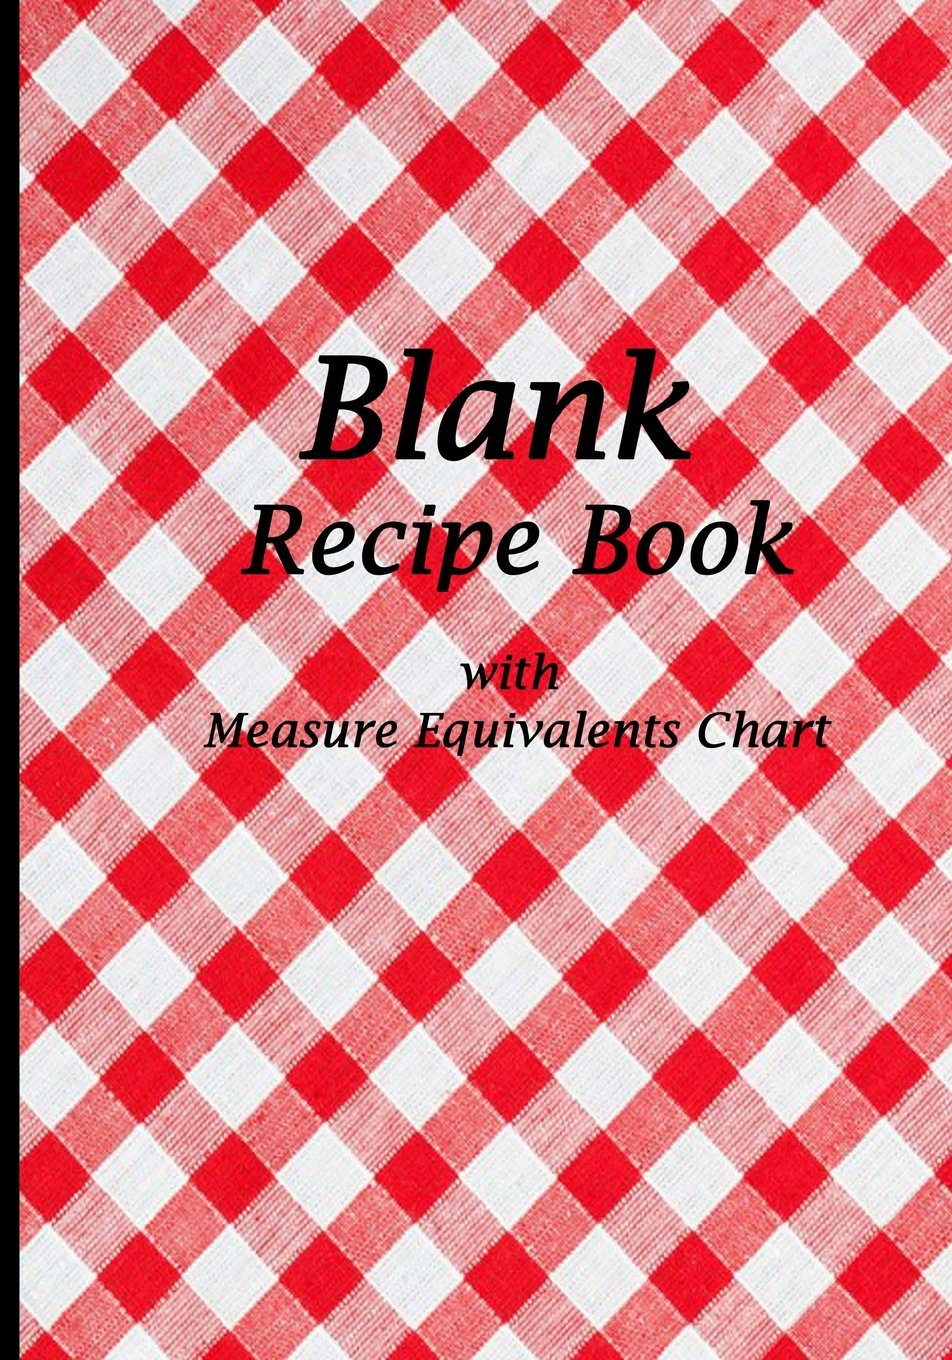 Blank Recipe Book: Vintage Red Tablecloth Design,Blank Cookbook with Measure Equivalents Chart, 7 x 10, 108 Pages ebook